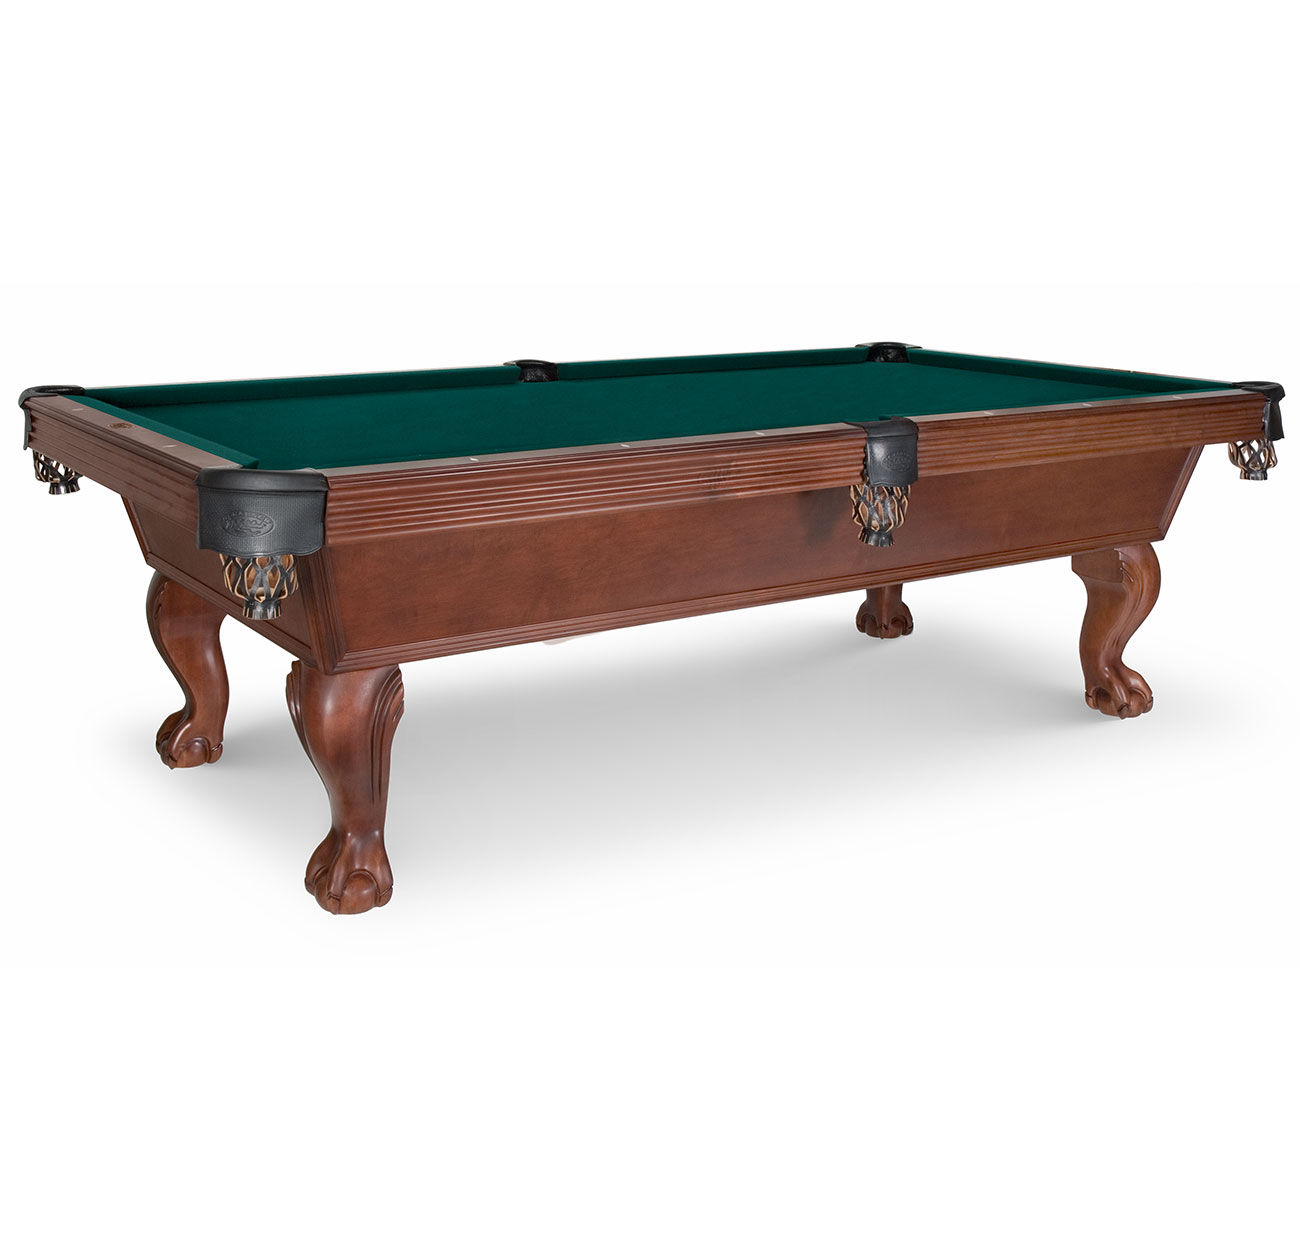 Olhausen stratford pool table shop olhausen pool tables for Table table table